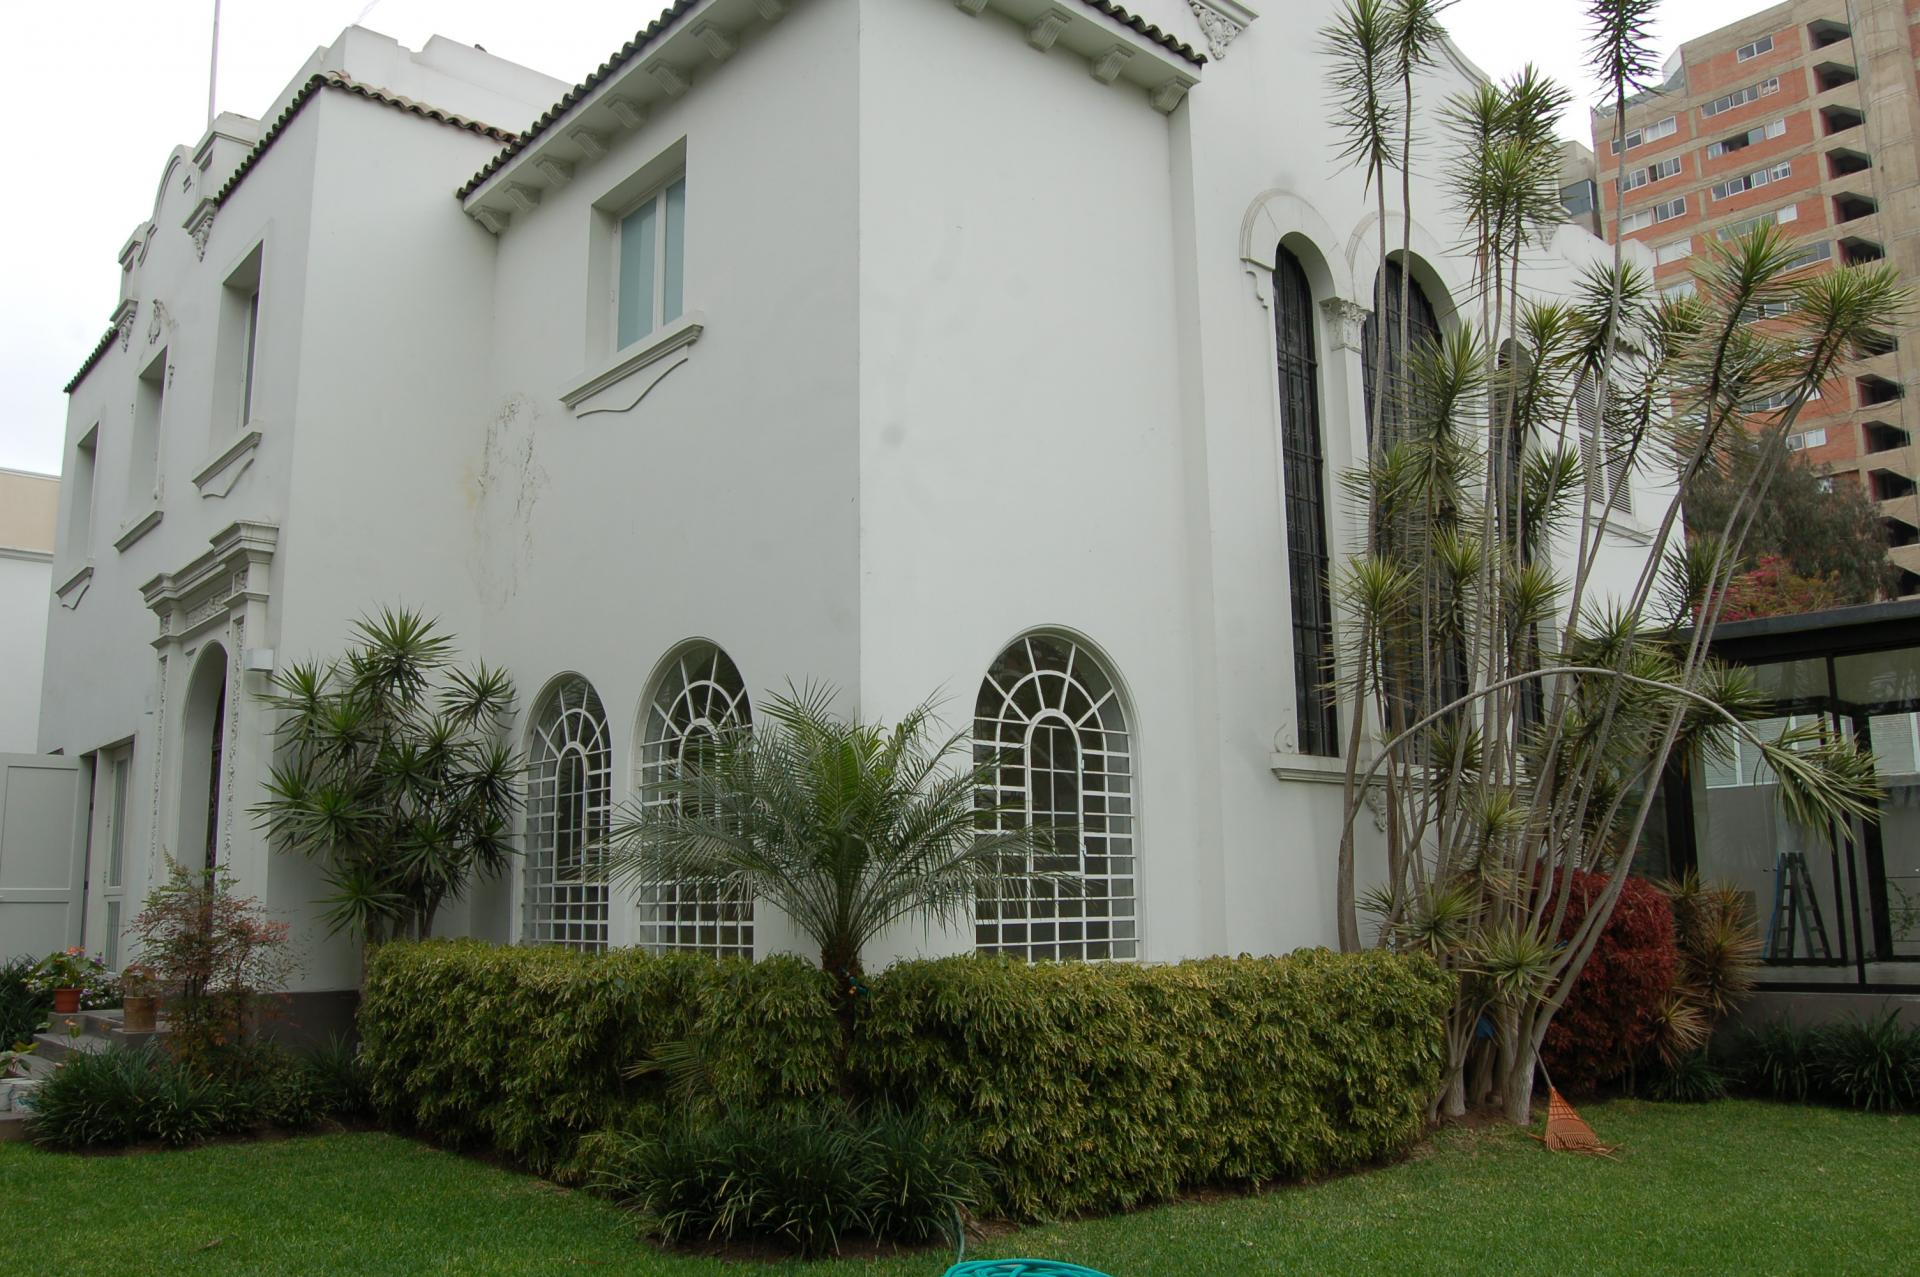 LIMA, SAN ISIDRO, CALLE LIZARDO ALZAMORA, 6 BEDROOM HOUSE, FOR SALE